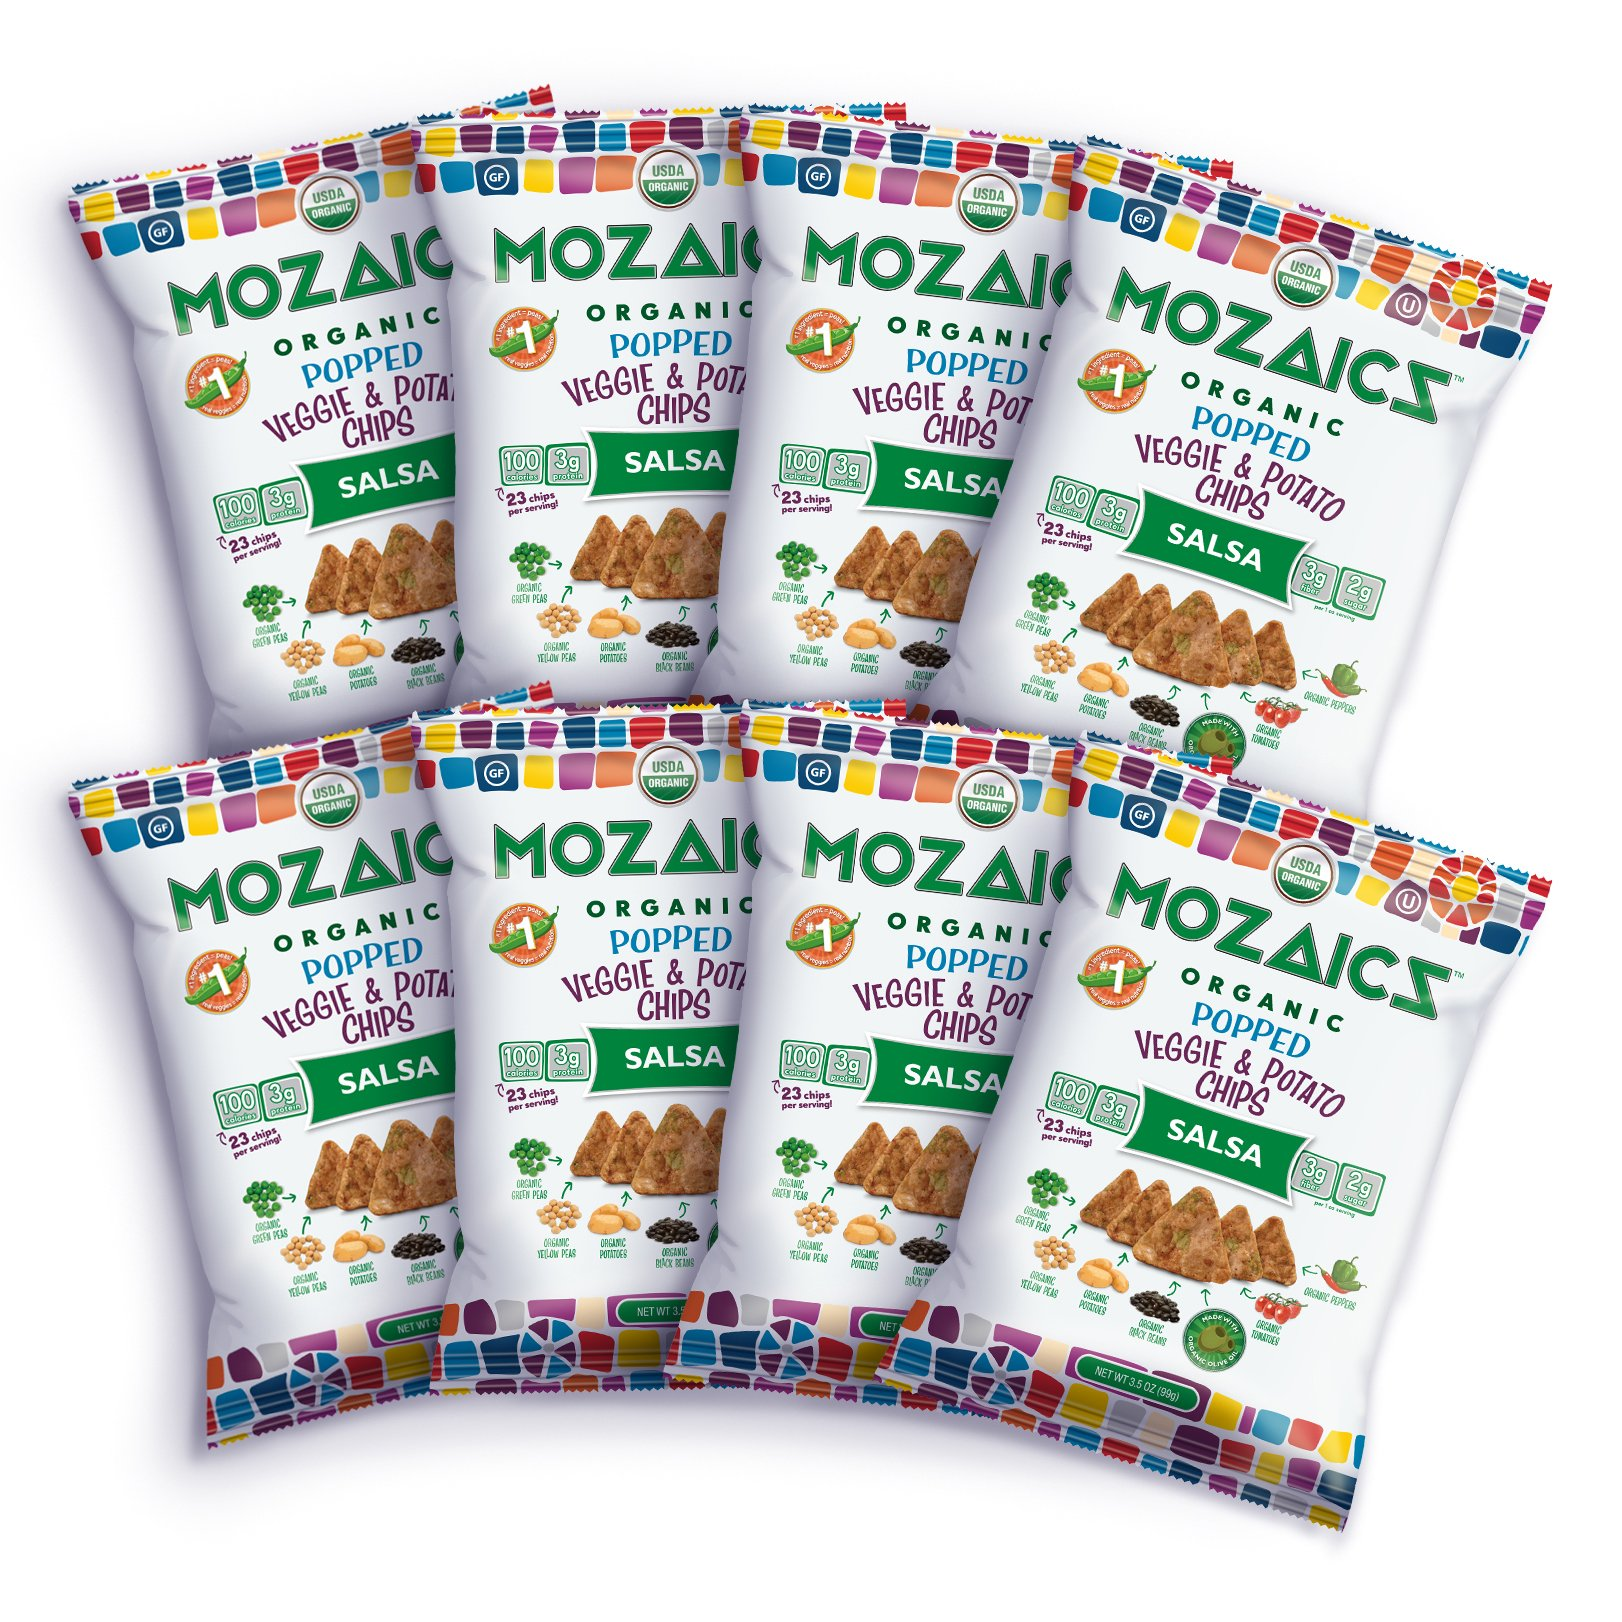 Mozaics Salsa Organic Popped Veggie Chips- Under 100 Calories, Gluten Free Healthy Snack - Healthier than veggie straws or stix - 3.5oz big bags (Salsa, 8-count) by Mozaics